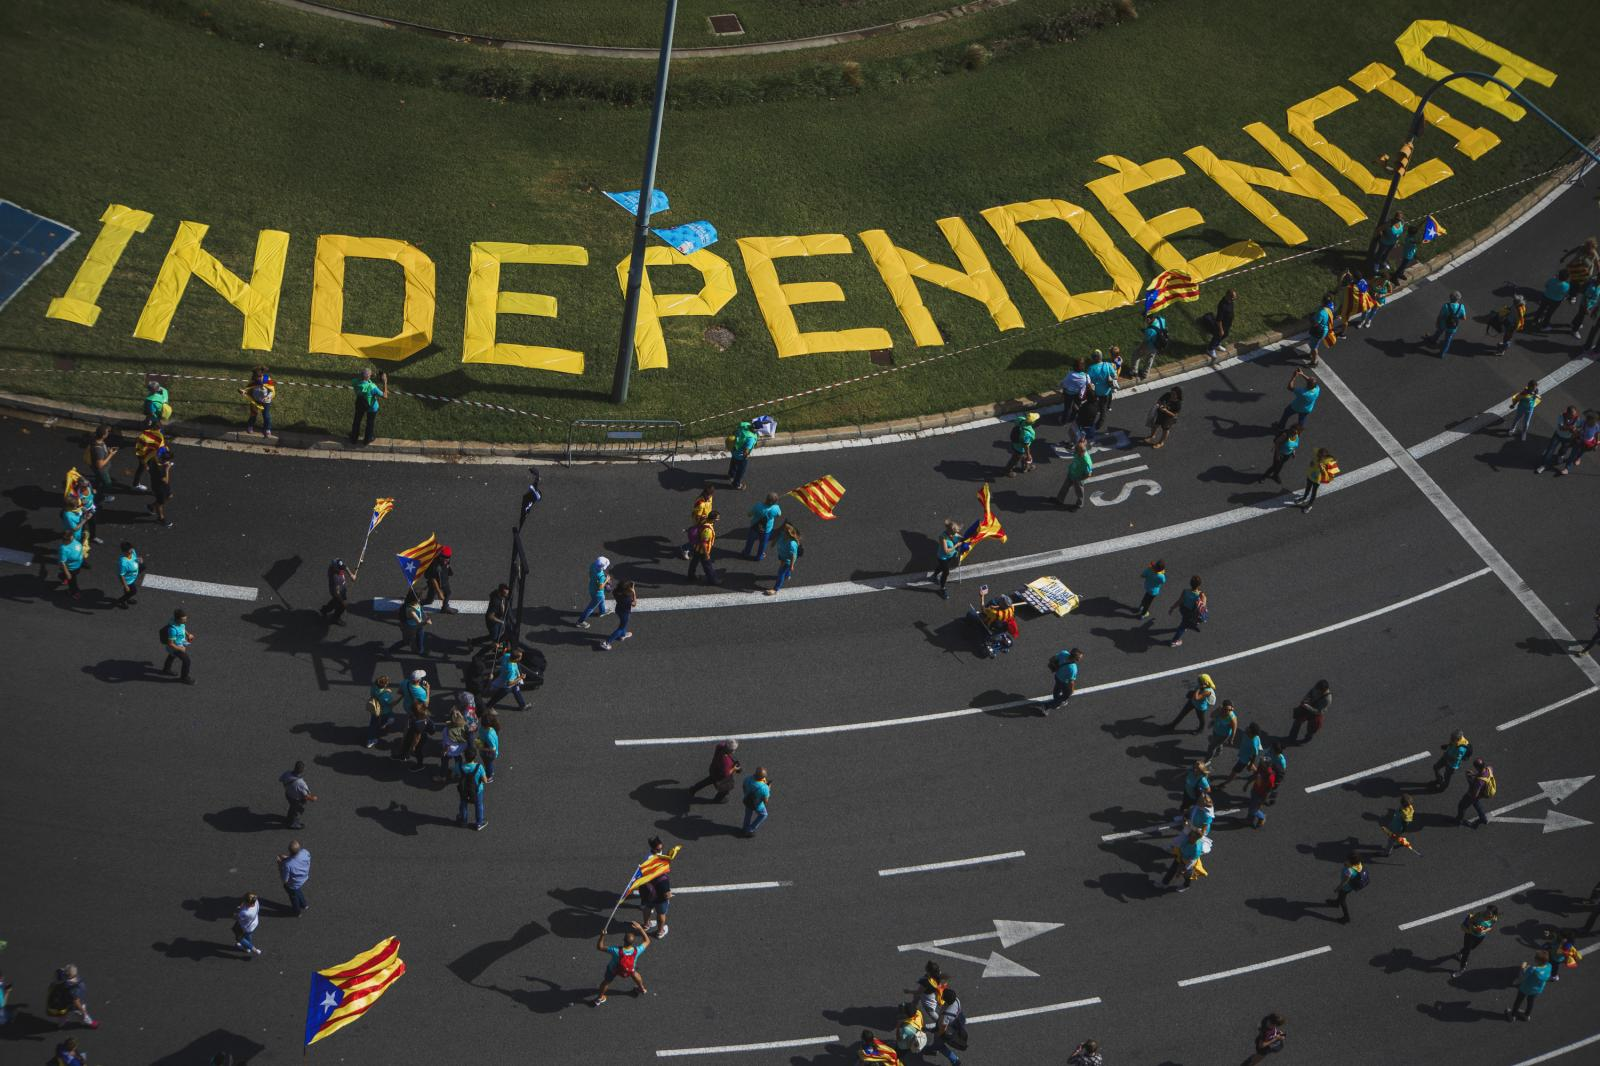 """People walking with symbols and flags for independence during the Catalan National day known as """"la Diada"""" celebrated on September 11th every year to commemorate the loss of Catalonia's laws and institutions after the Siege of Barcelona in 1714. More and more divided after the attempted secession of 2017, the Catalan independentists have measured their forces in the Catalan capital in the least participation in the last eight years, a few weeks before the Supreme Court ruling after the trial of the procés. The Guàrdia Urbana of Barcelona estimates that some 600,000 people have attended, less than any other year since 2012 when massive independence protests began. (September 11,2019. Barcelona, Spain)"""